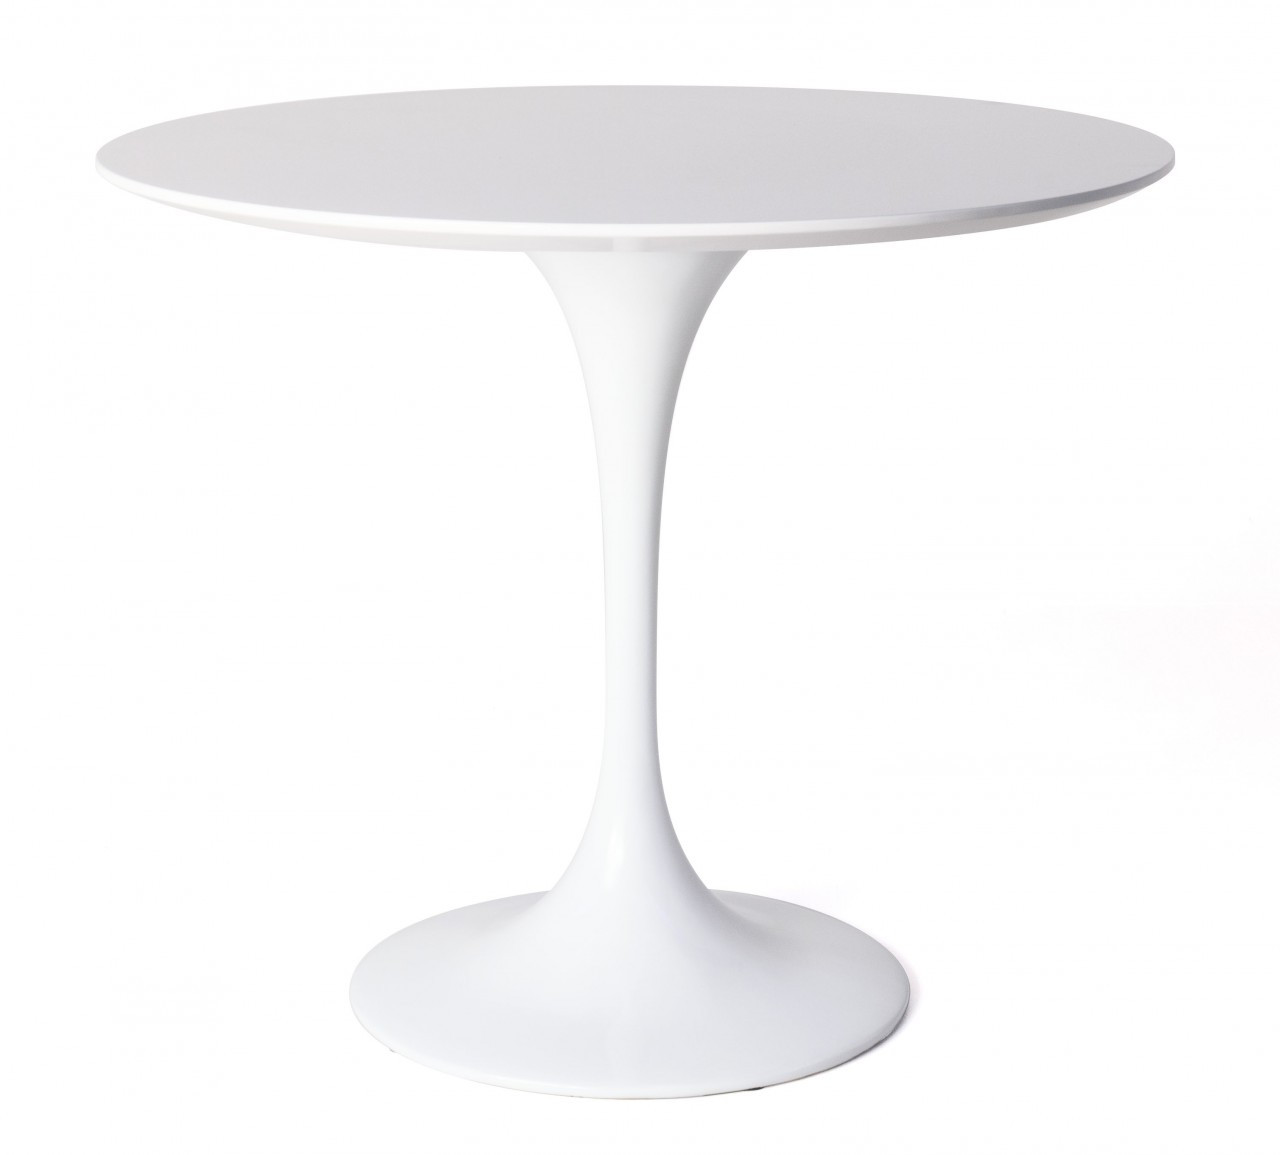 replica tulip dining table white fiberglass 90cm replica frrniture. Black Bedroom Furniture Sets. Home Design Ideas